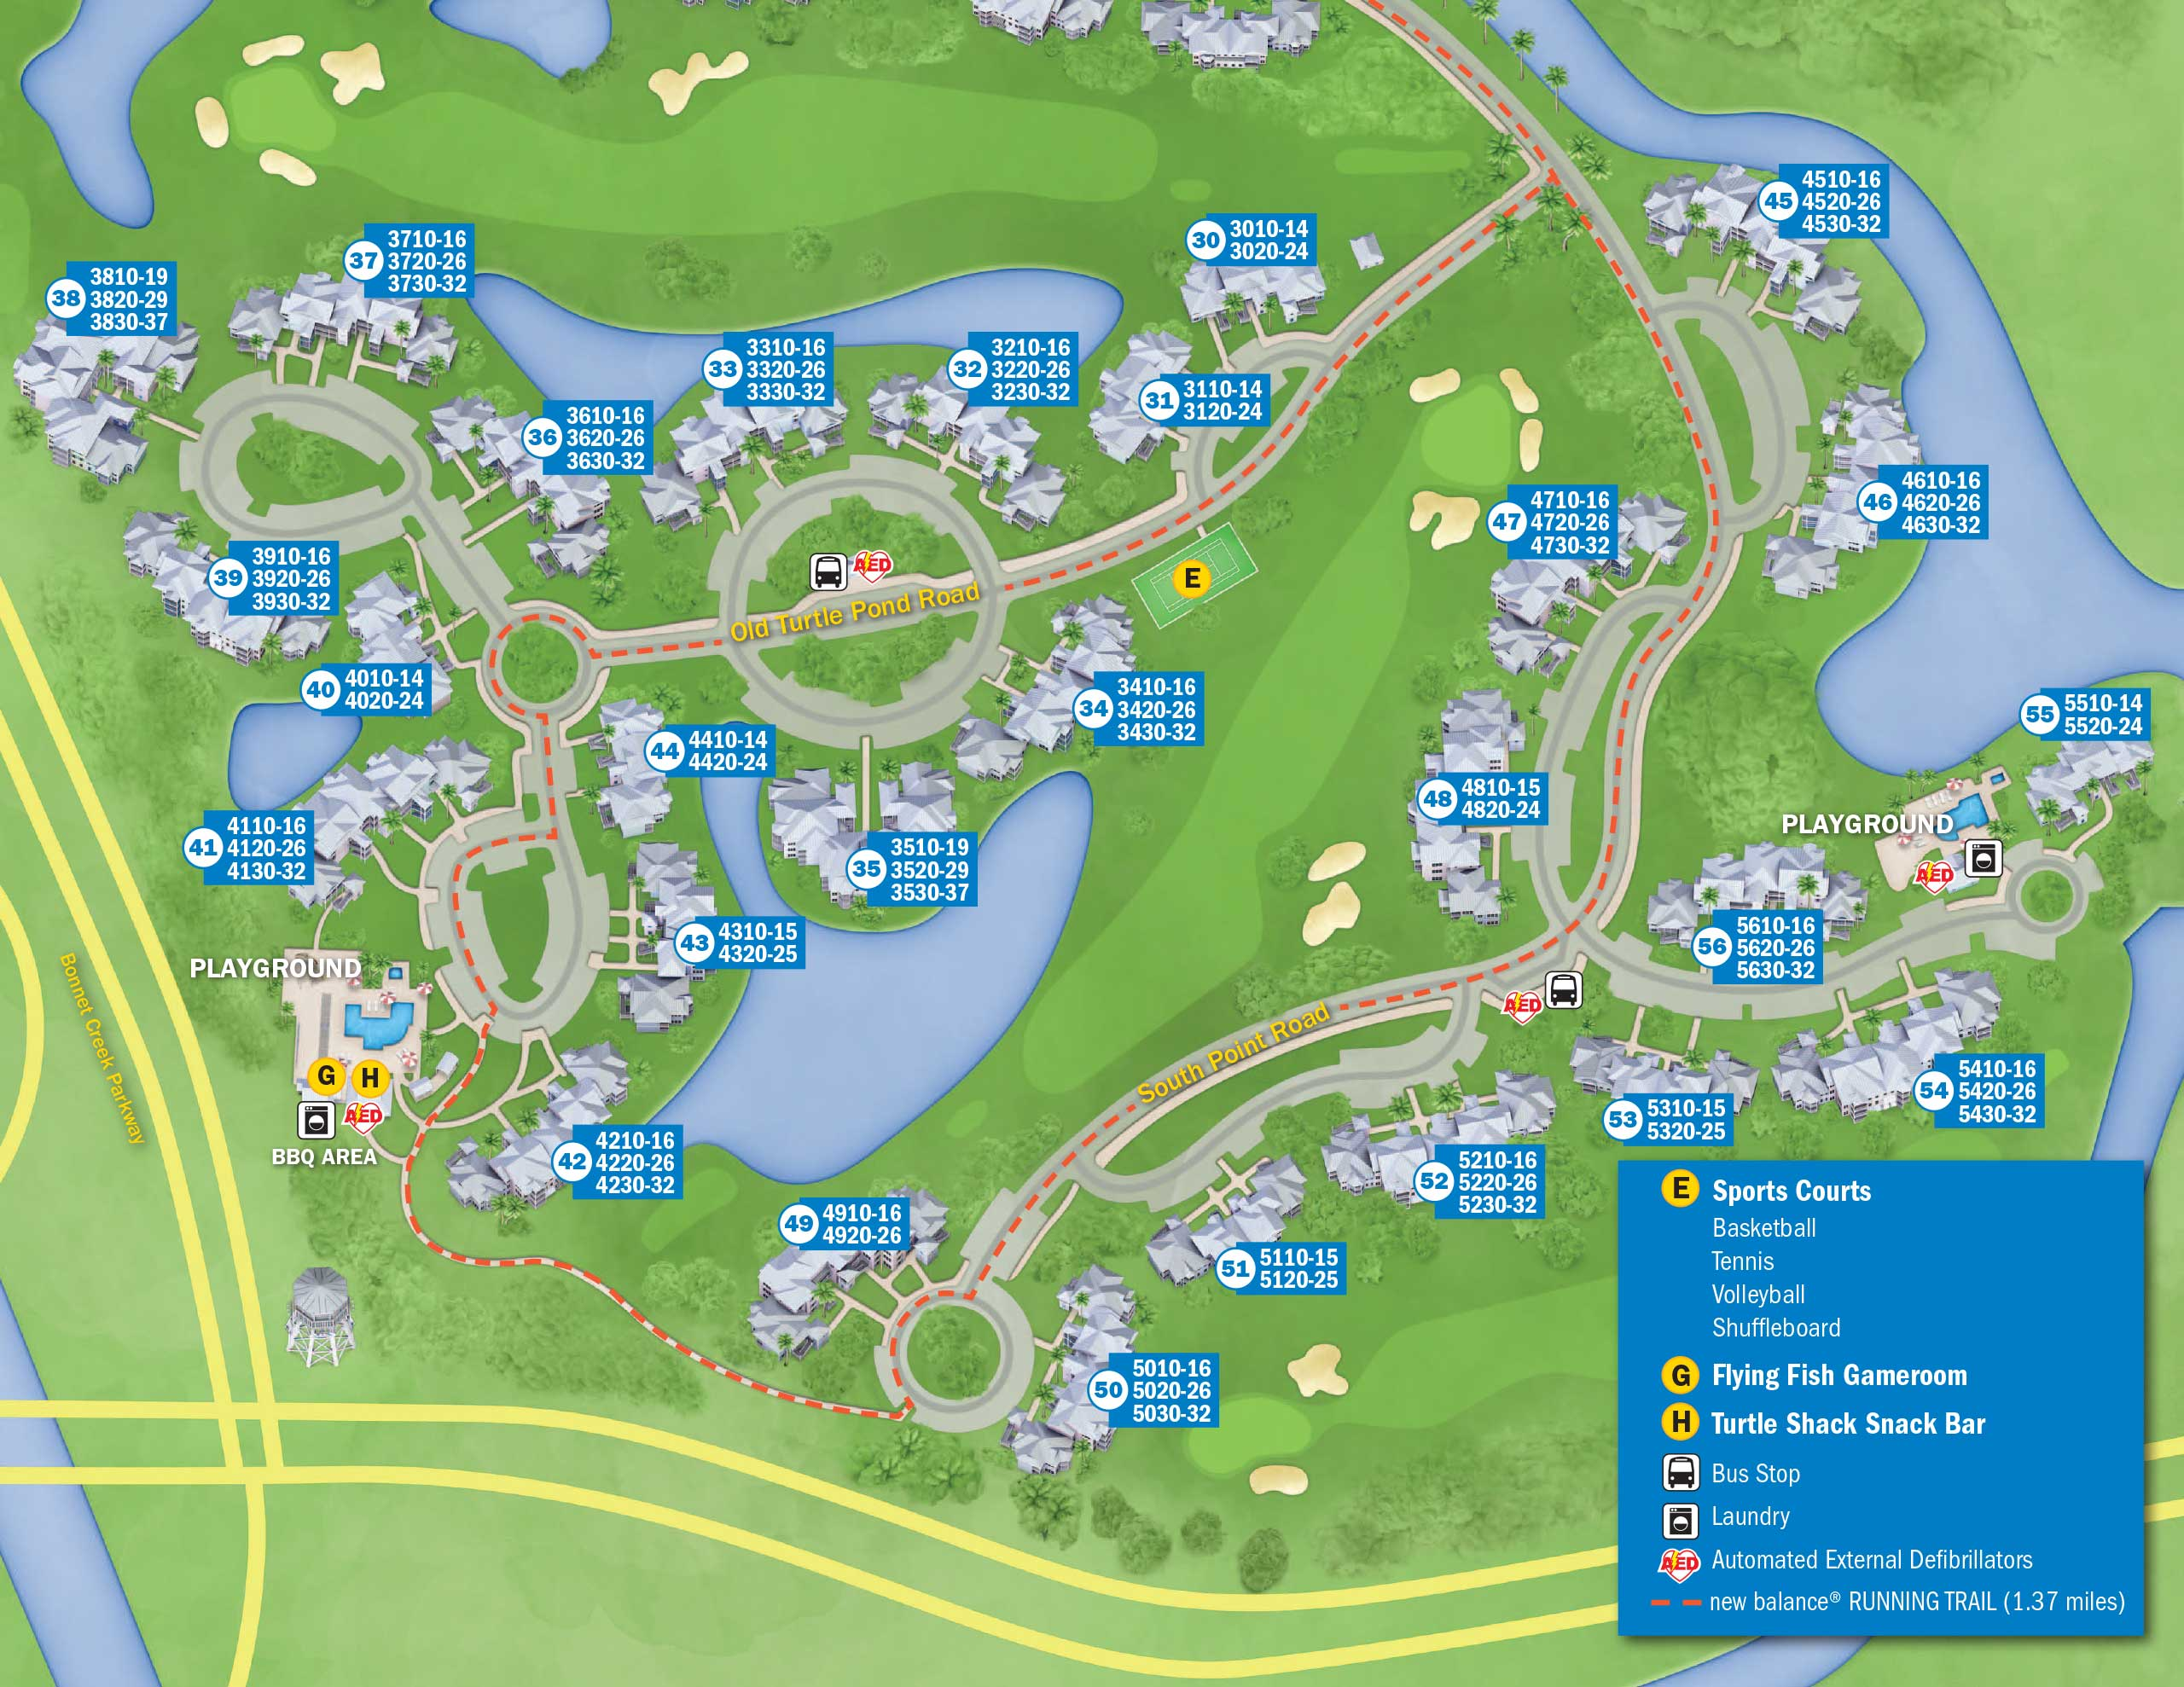 April 2017 Walt Disney World Resort Hotel Maps - Photo 28 of 33